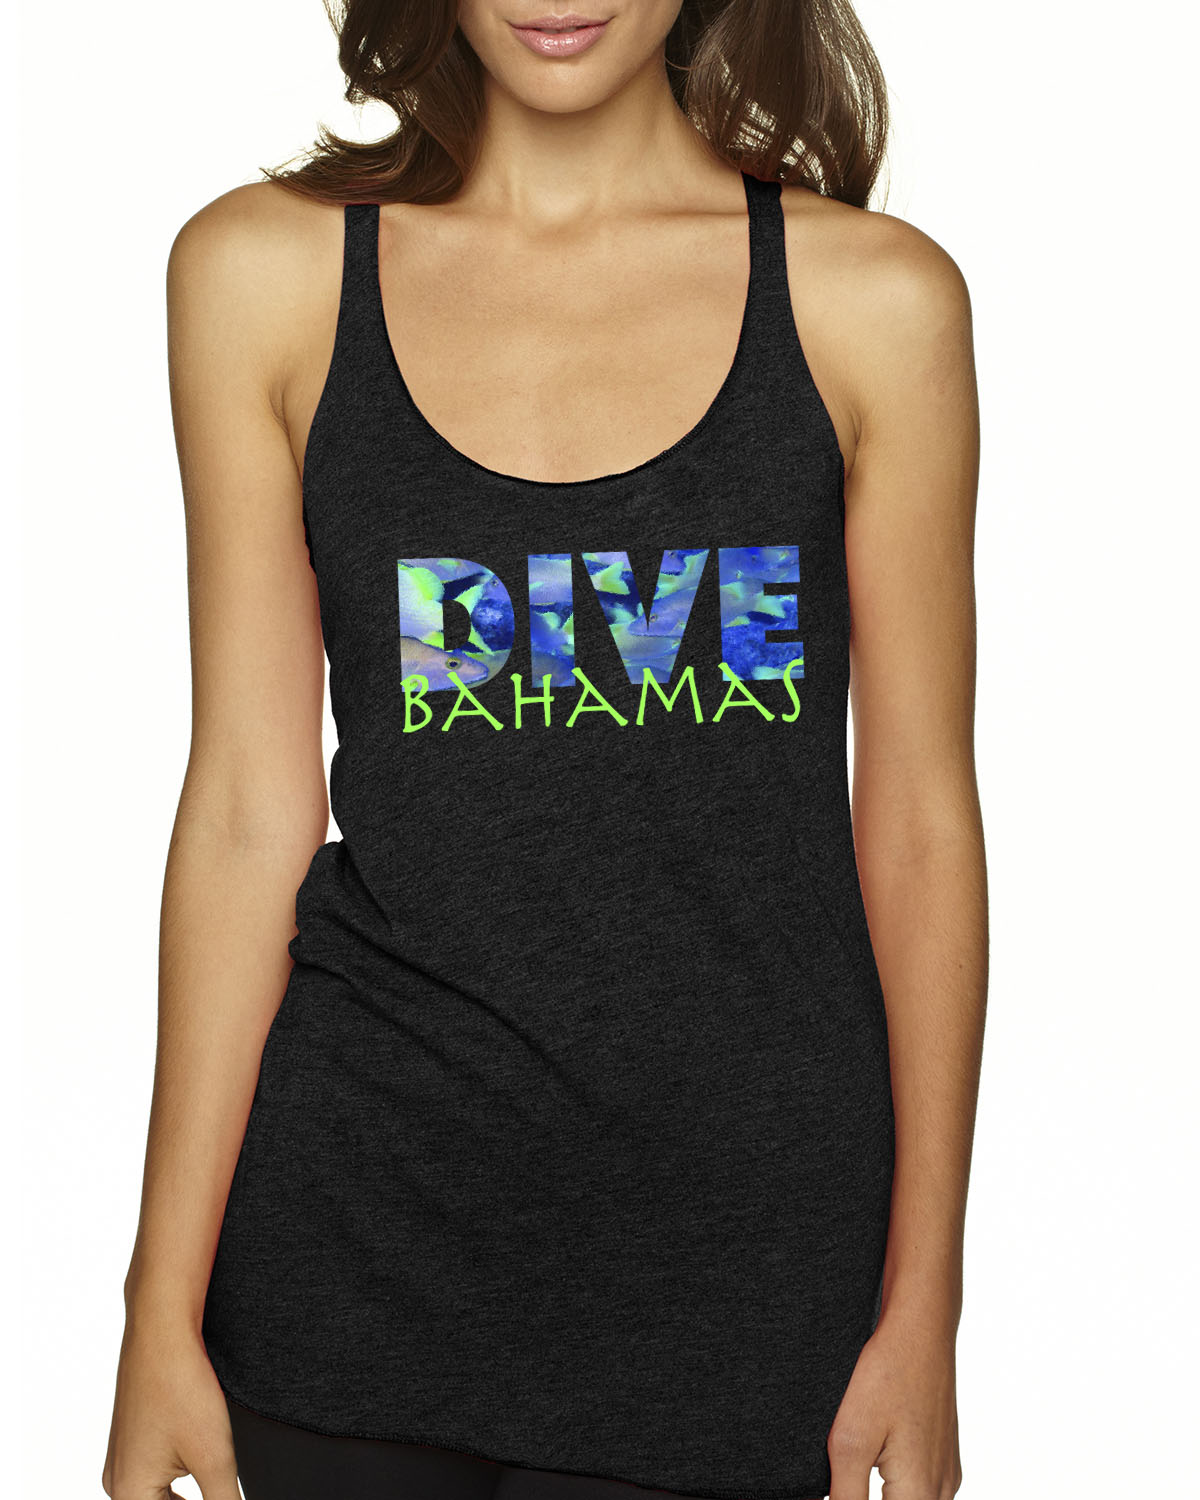 Women's Tri-blend racer-back DIVE scuba diving tank top (Black)